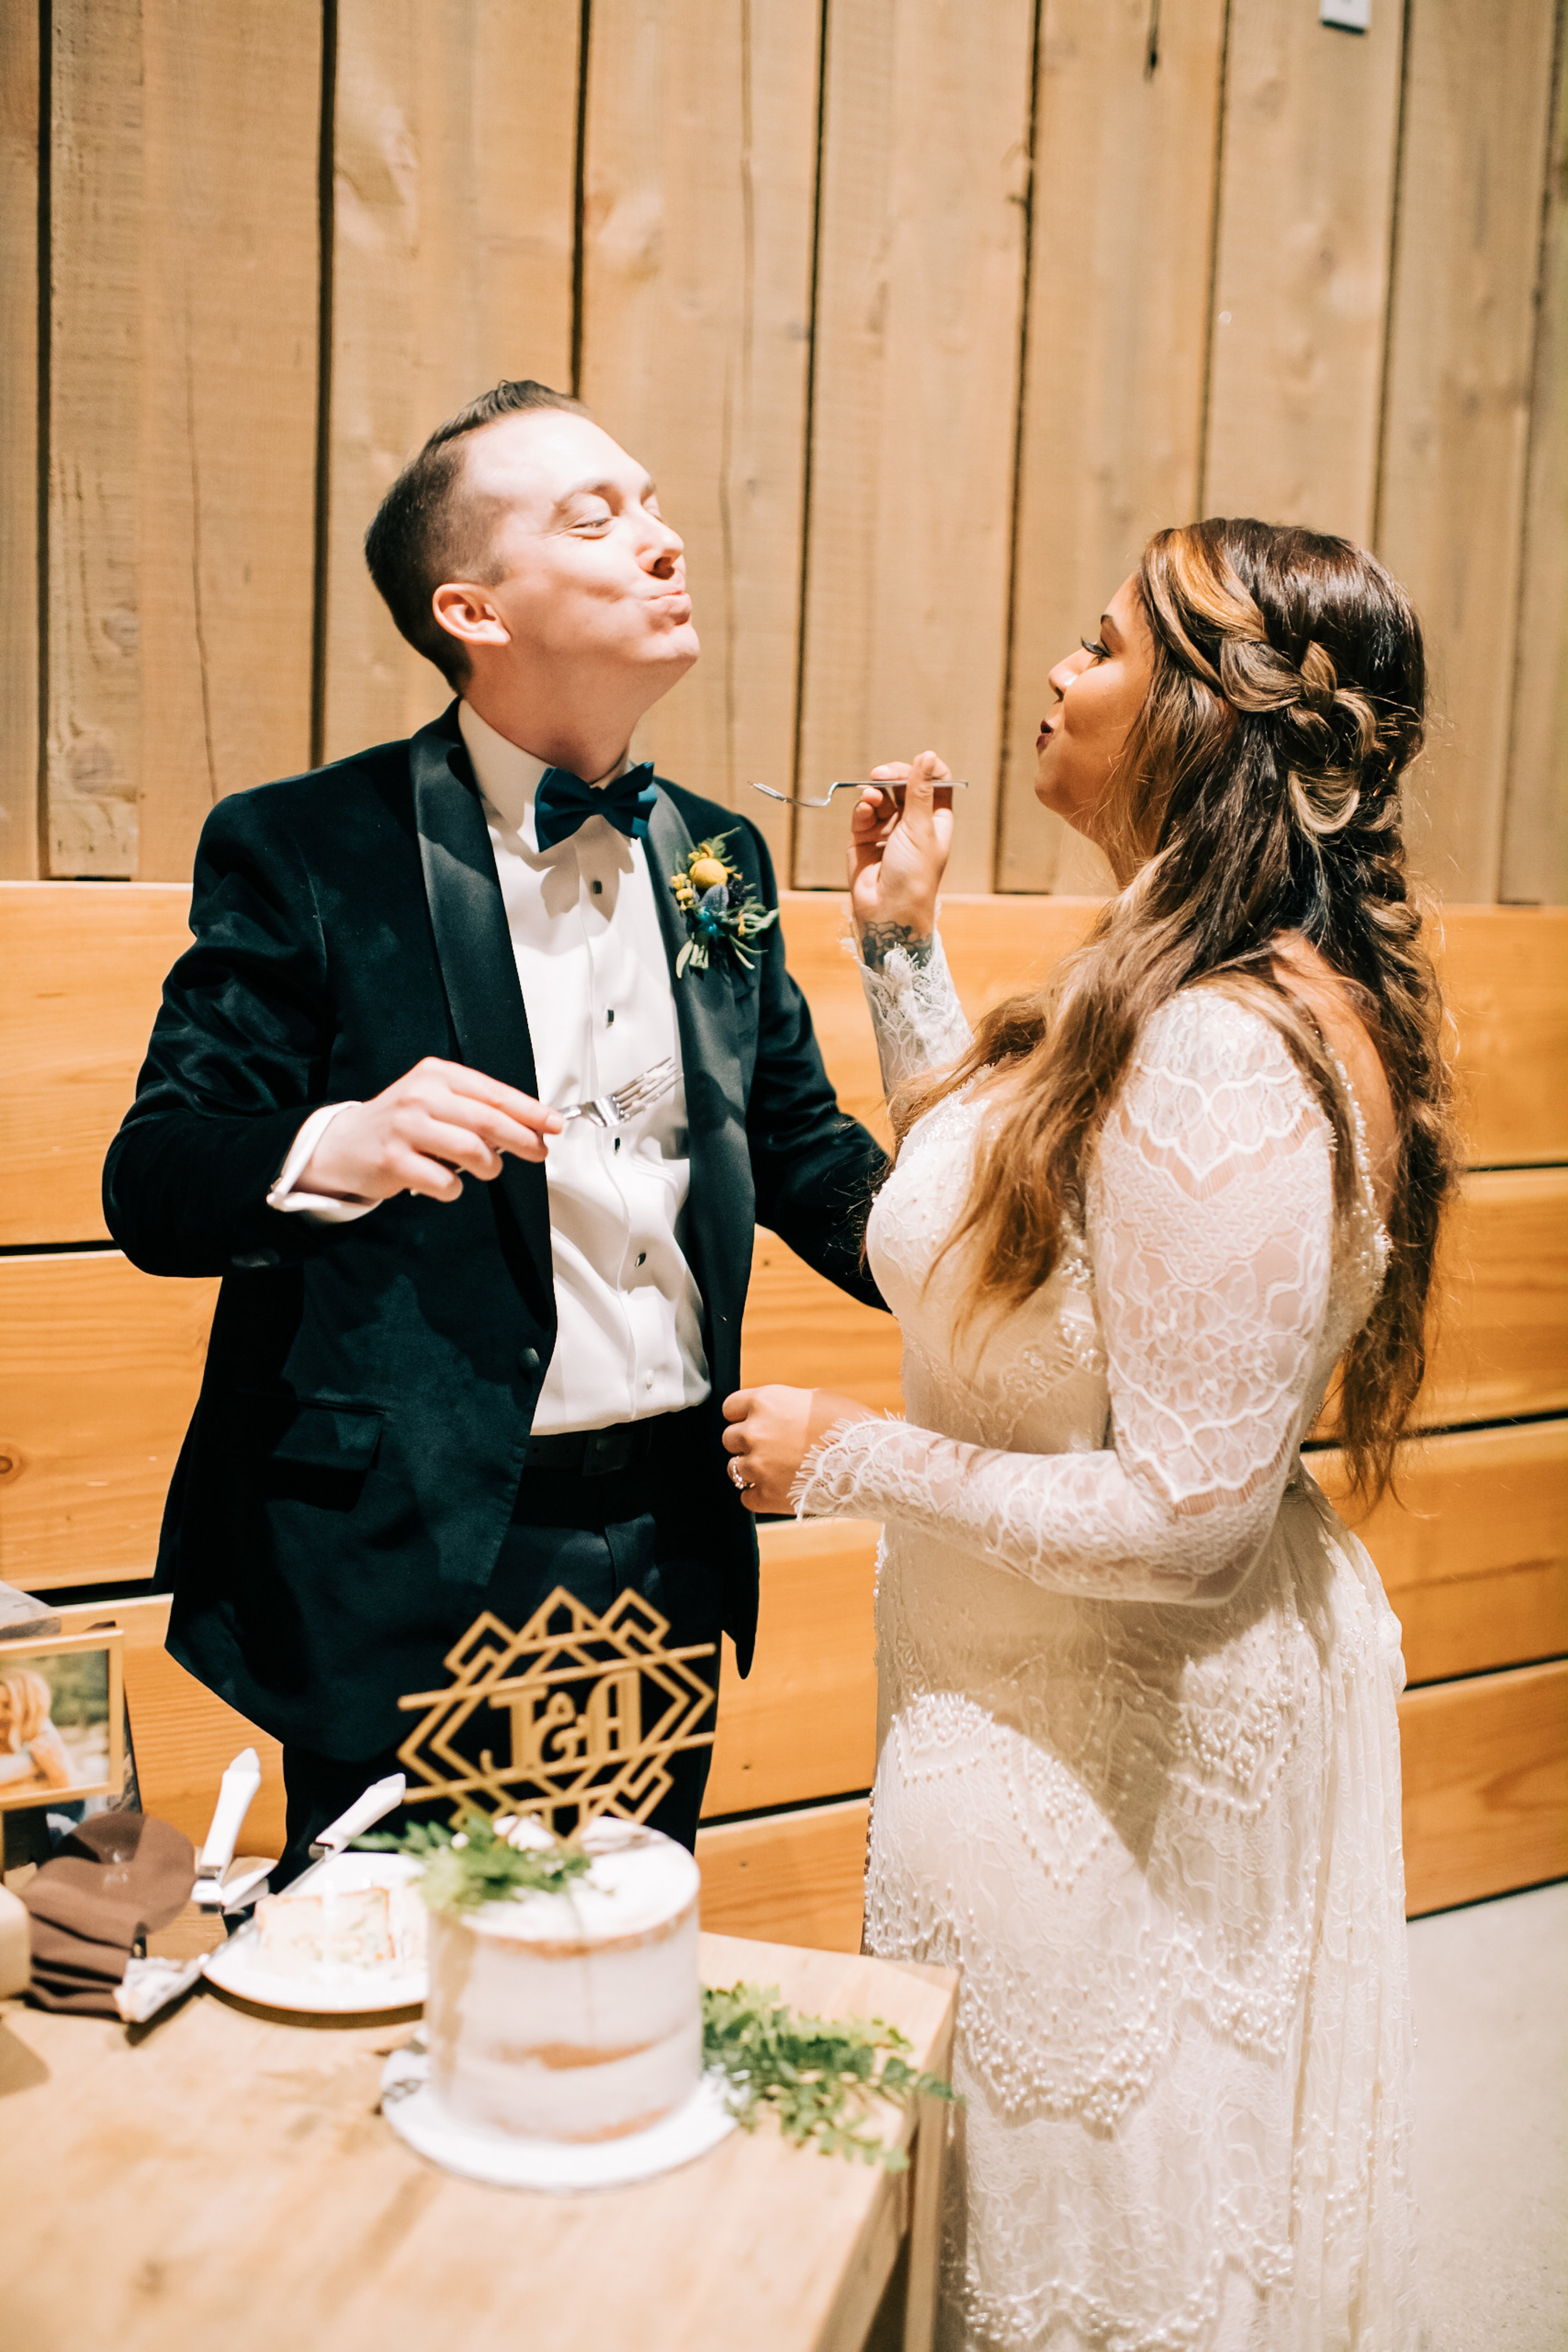 bay area nontraditional wedding photographer southern california boho wedding love light magic san francisco oakland northern california-1236.jpg